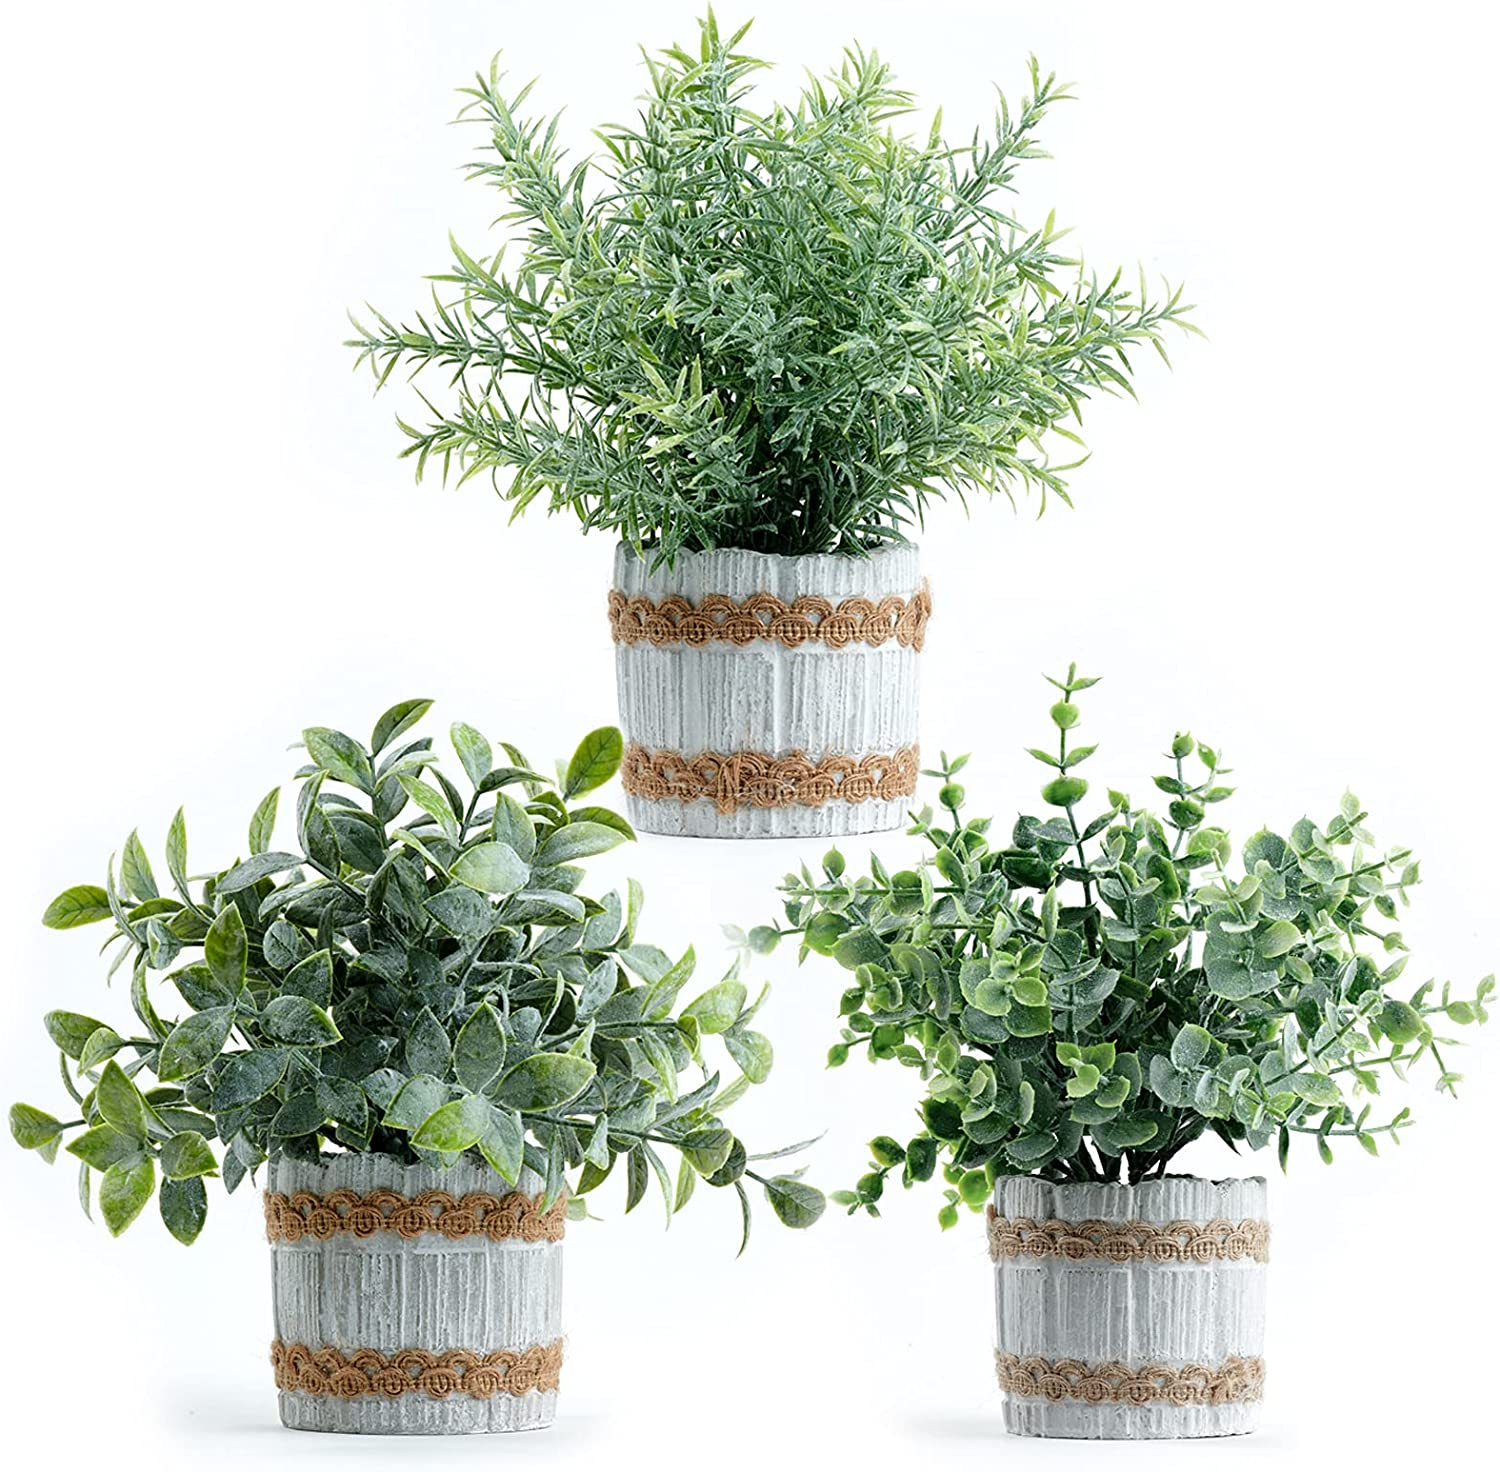 Joyhalo 3 Packs Artificial Potted Plants, Small Fake Plant Indoor-Faux Eucalyptus in Pots, Artificial Plants & Flowers for Home Office Farmhouse Kitchen Bathroom Table Decor